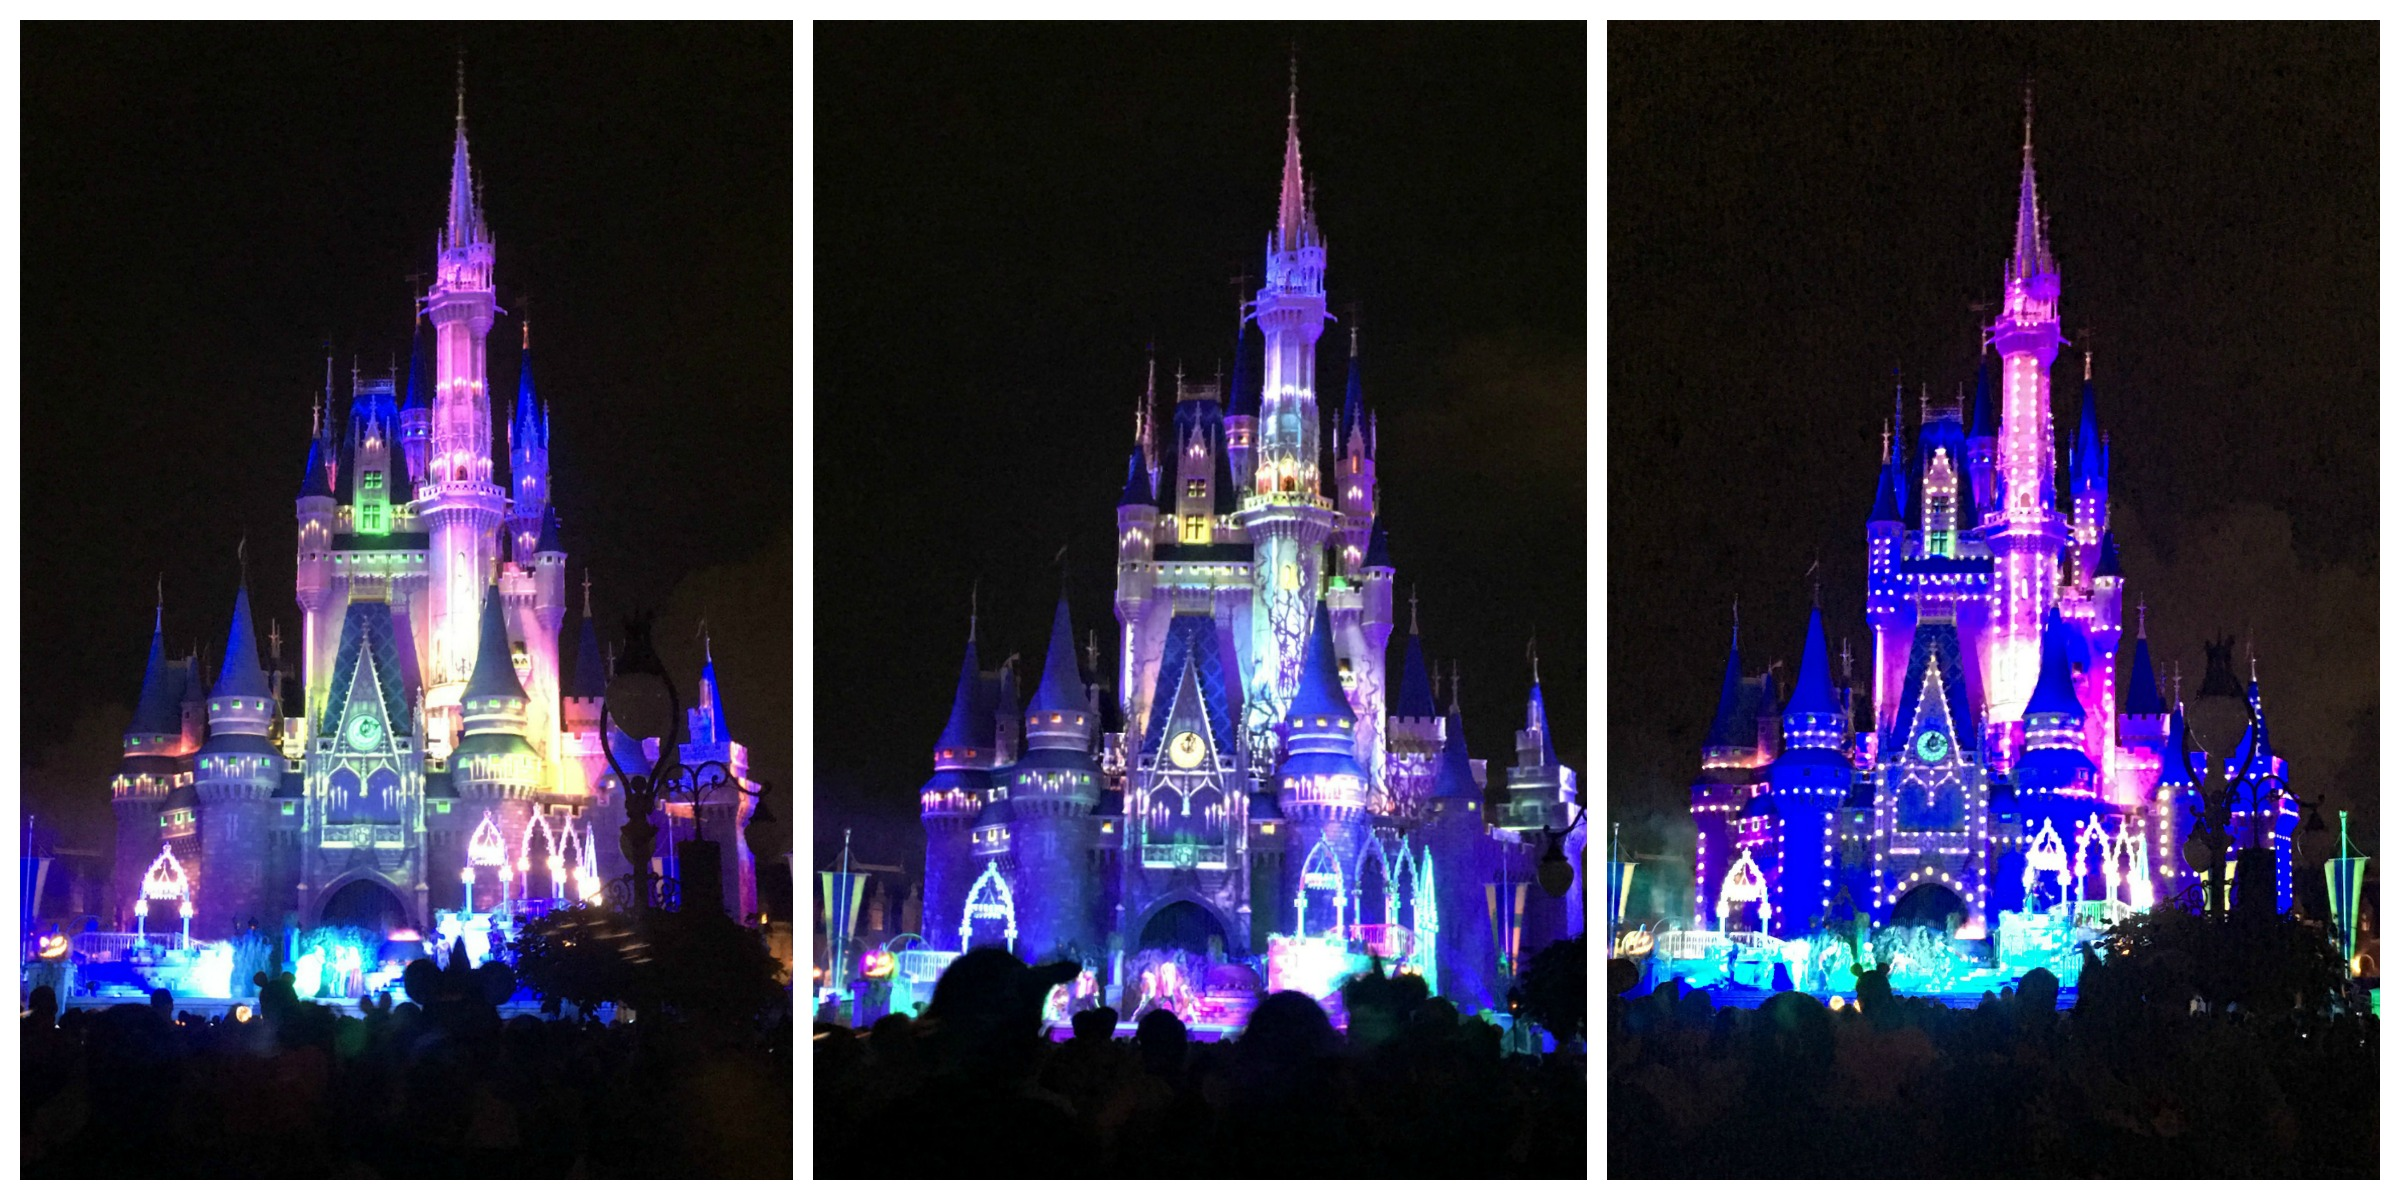 Halloween Castle Collage